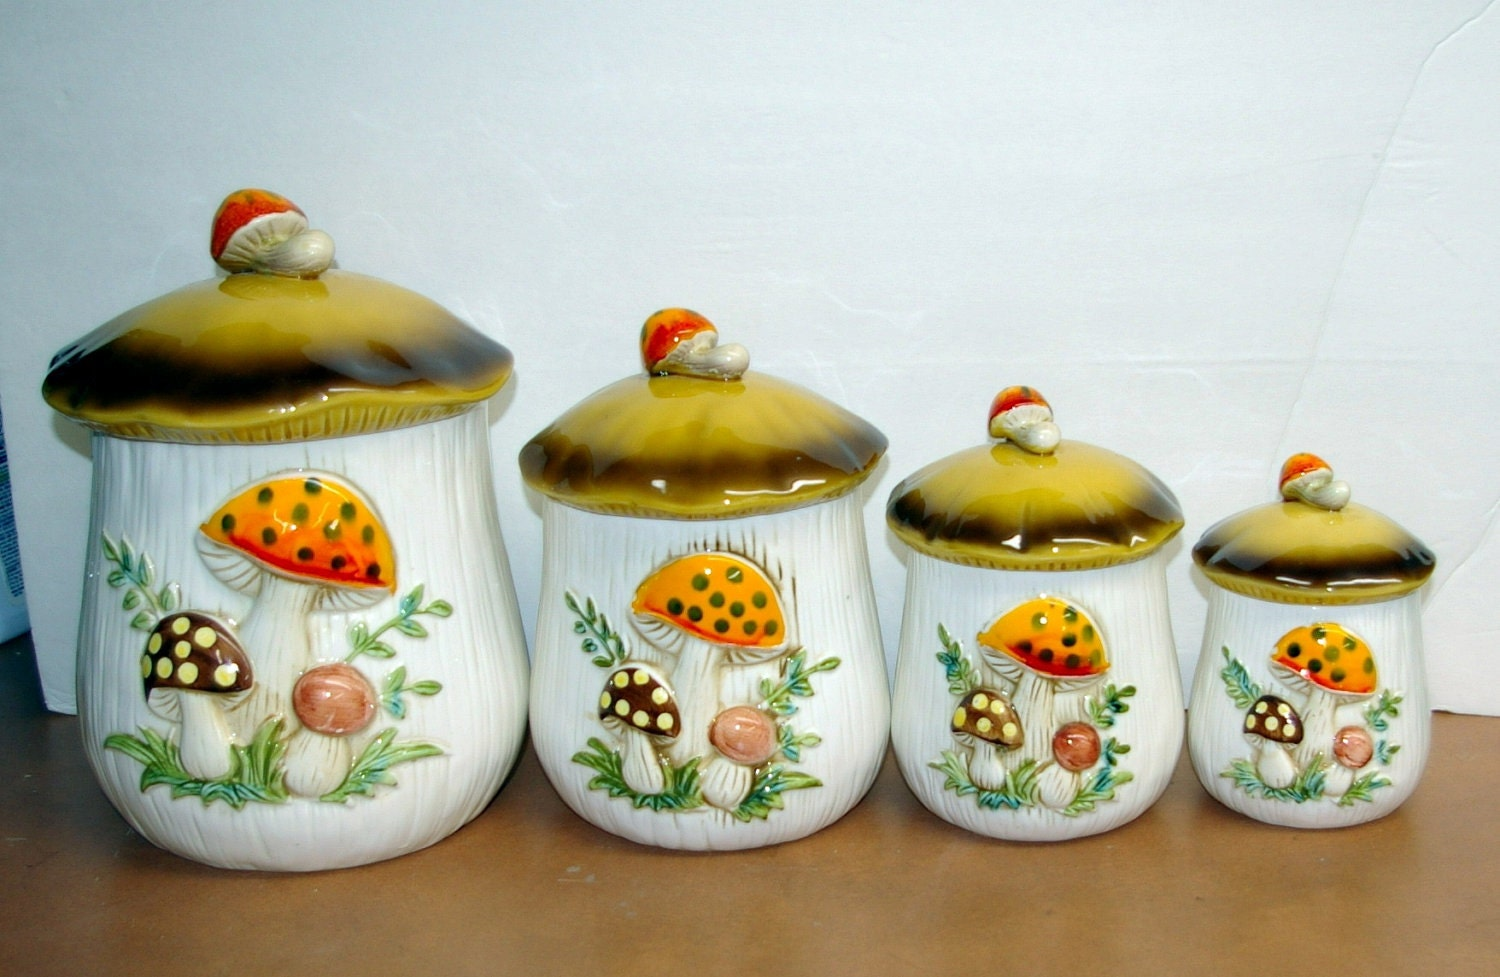 Mushroom Canisters 1977 Sears And Roebuck And Co Set 4 Pieces